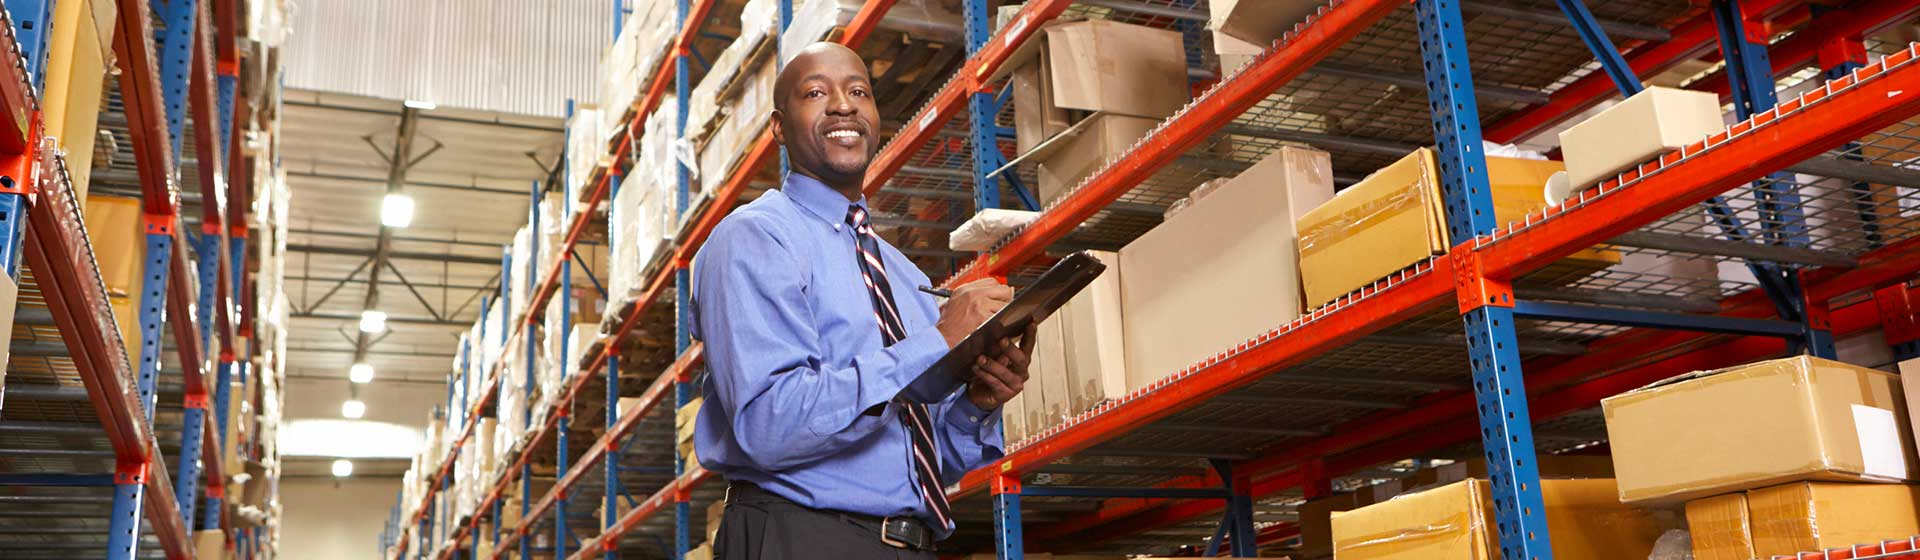 Smiling man in warehouse writing on clipboard